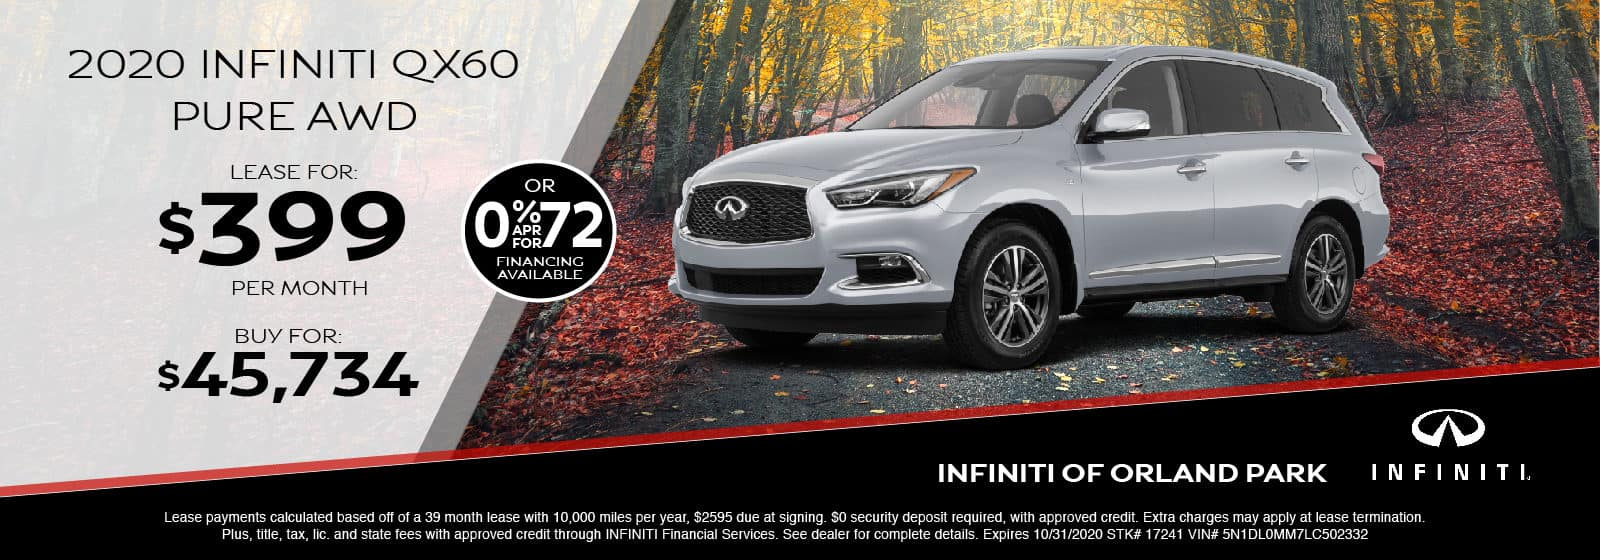 Lease a new 2020 QX60 for $399/month